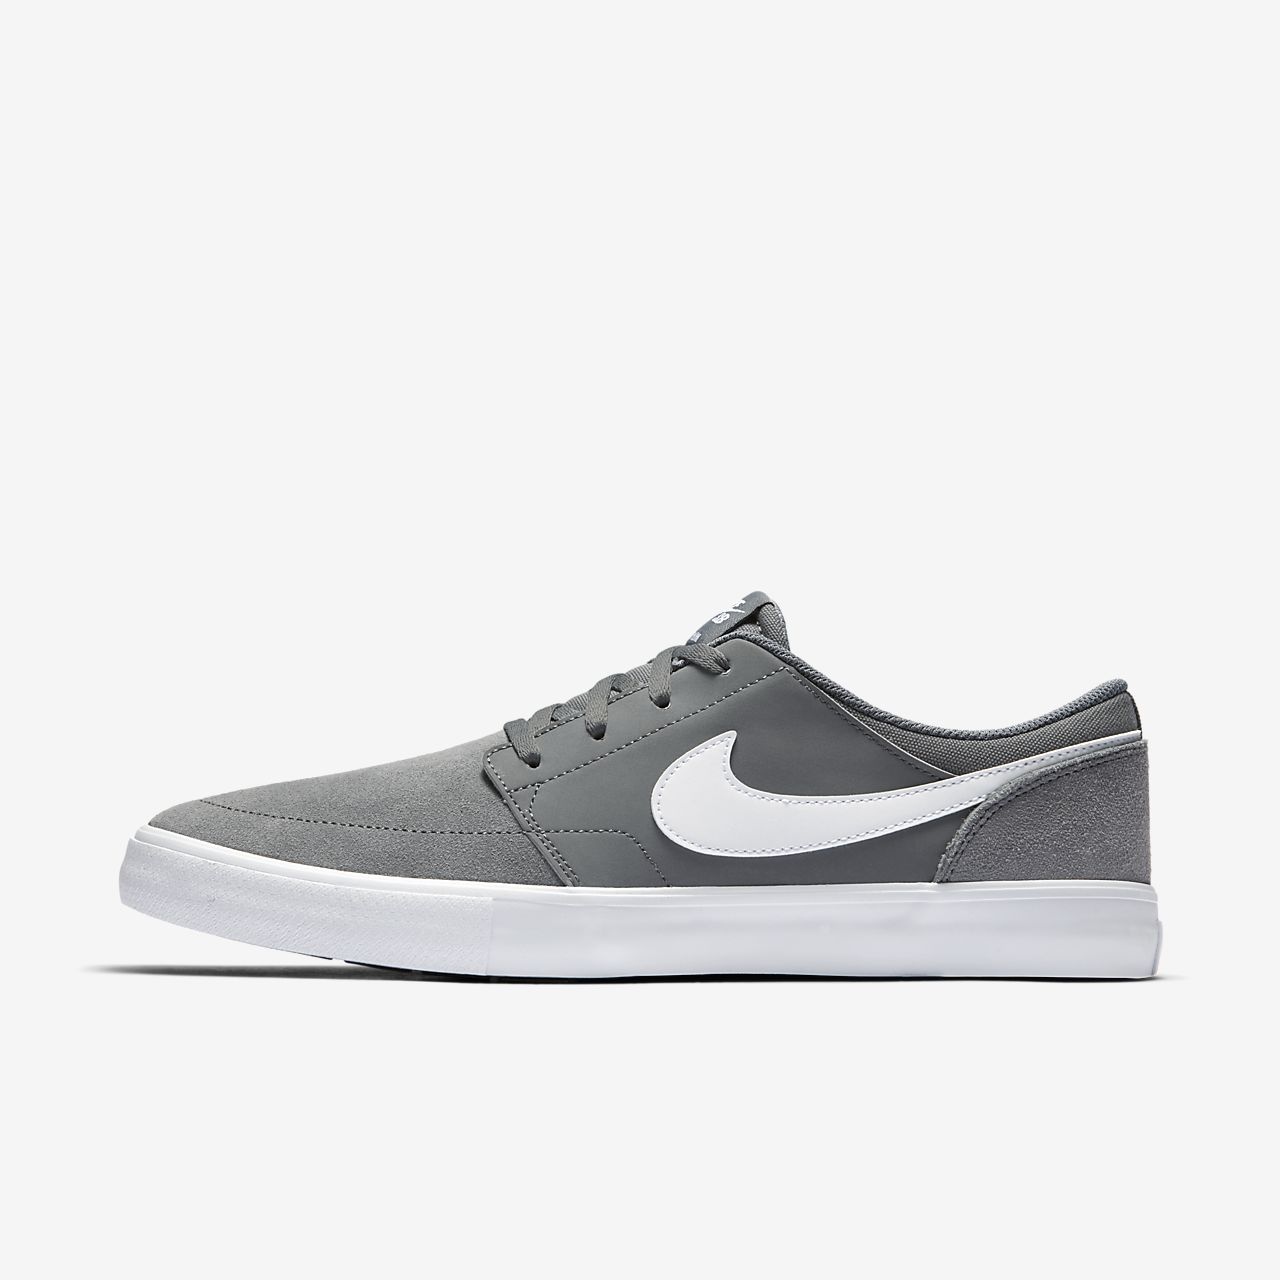 NIKE SB Men's Solarsoft Portmore II Skateboarding Shoes with mastercard for sale xE8iXpMWO